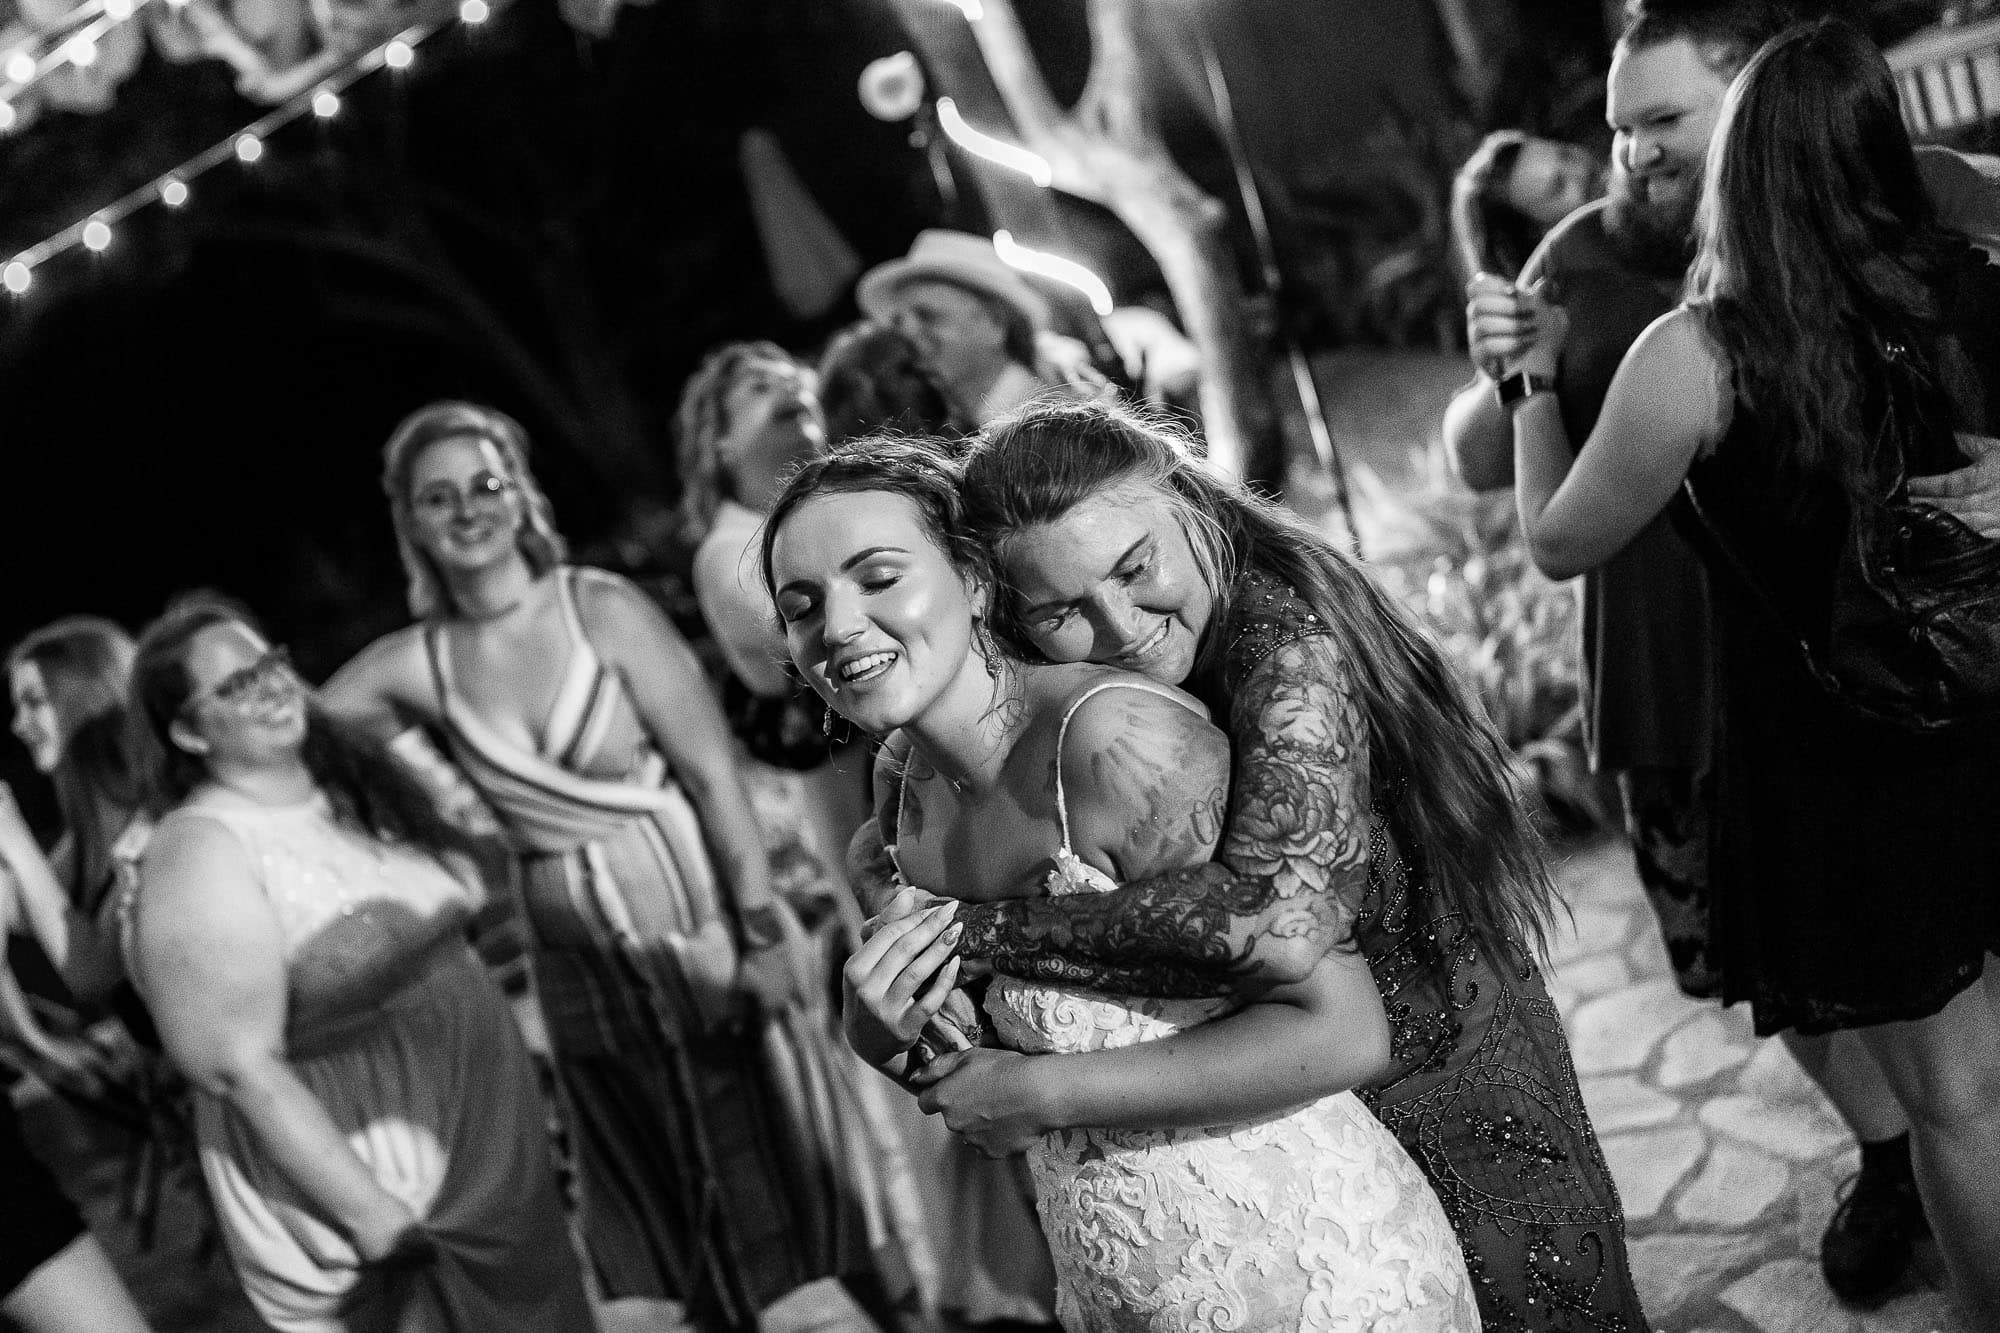 The bride's mother gives her daughter a hug